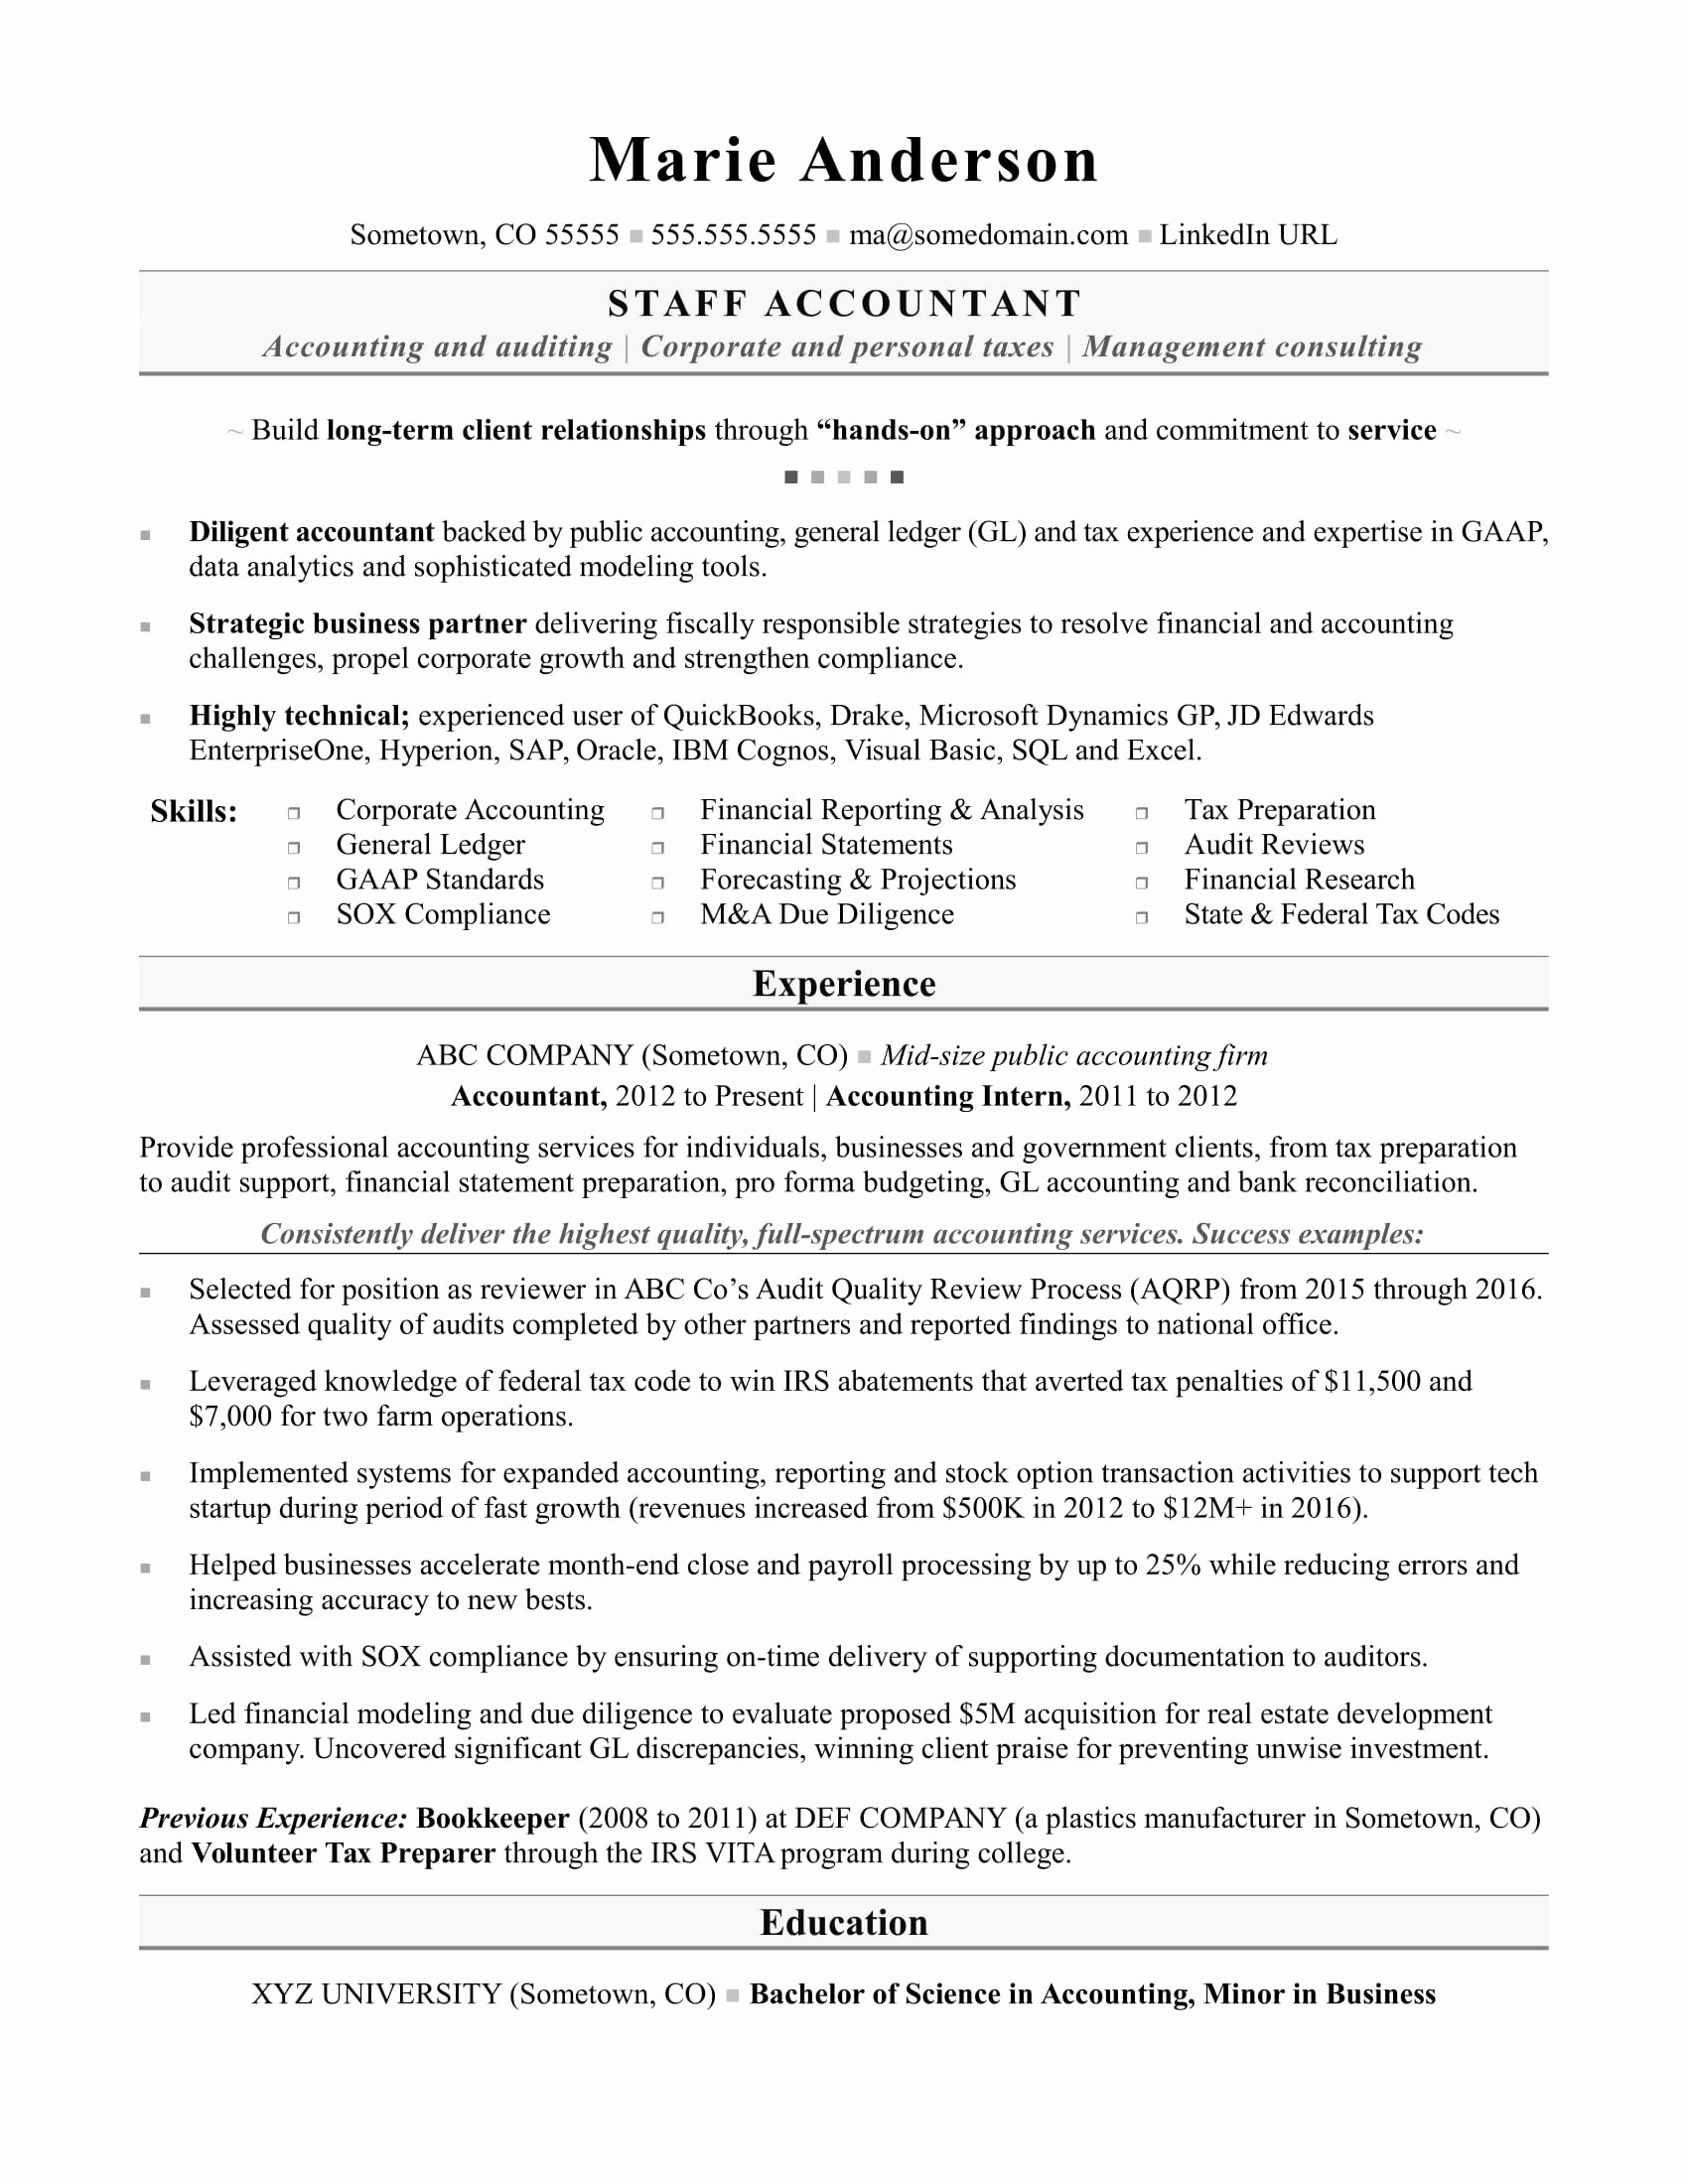 Staff Accounting Resume Samples Latter Example Template